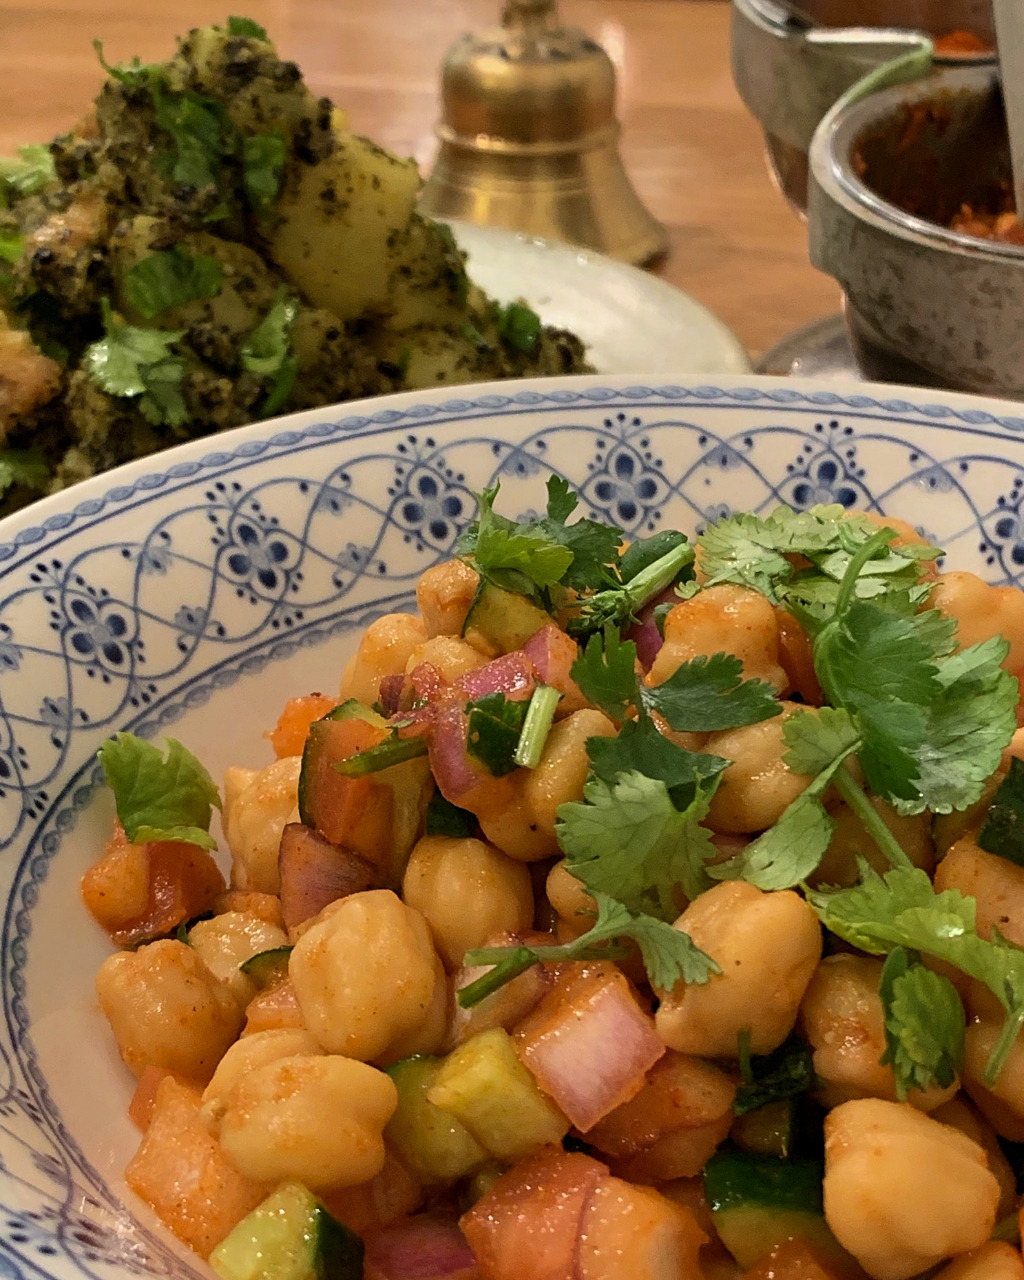 Chickpea and Potato Salads at Aashirwad Indian Nepalese cuisine in Kanazawa